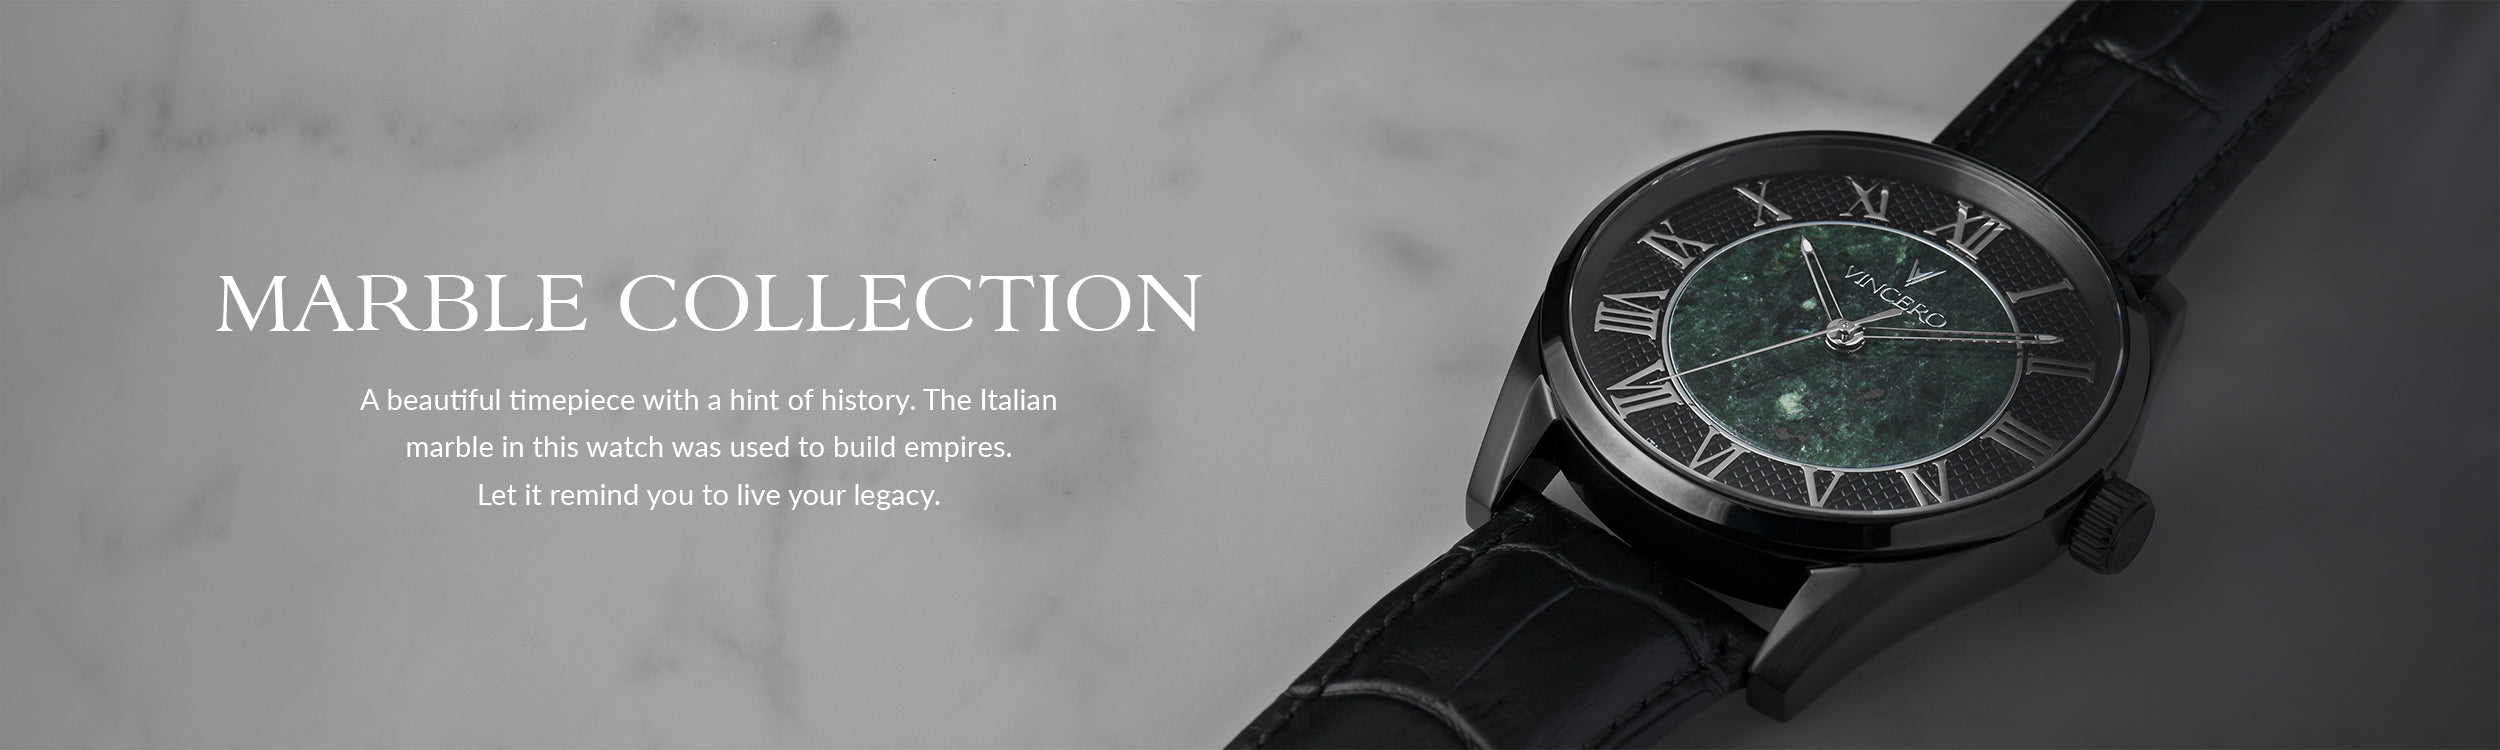 Italian Marble Collection Vincero Watches